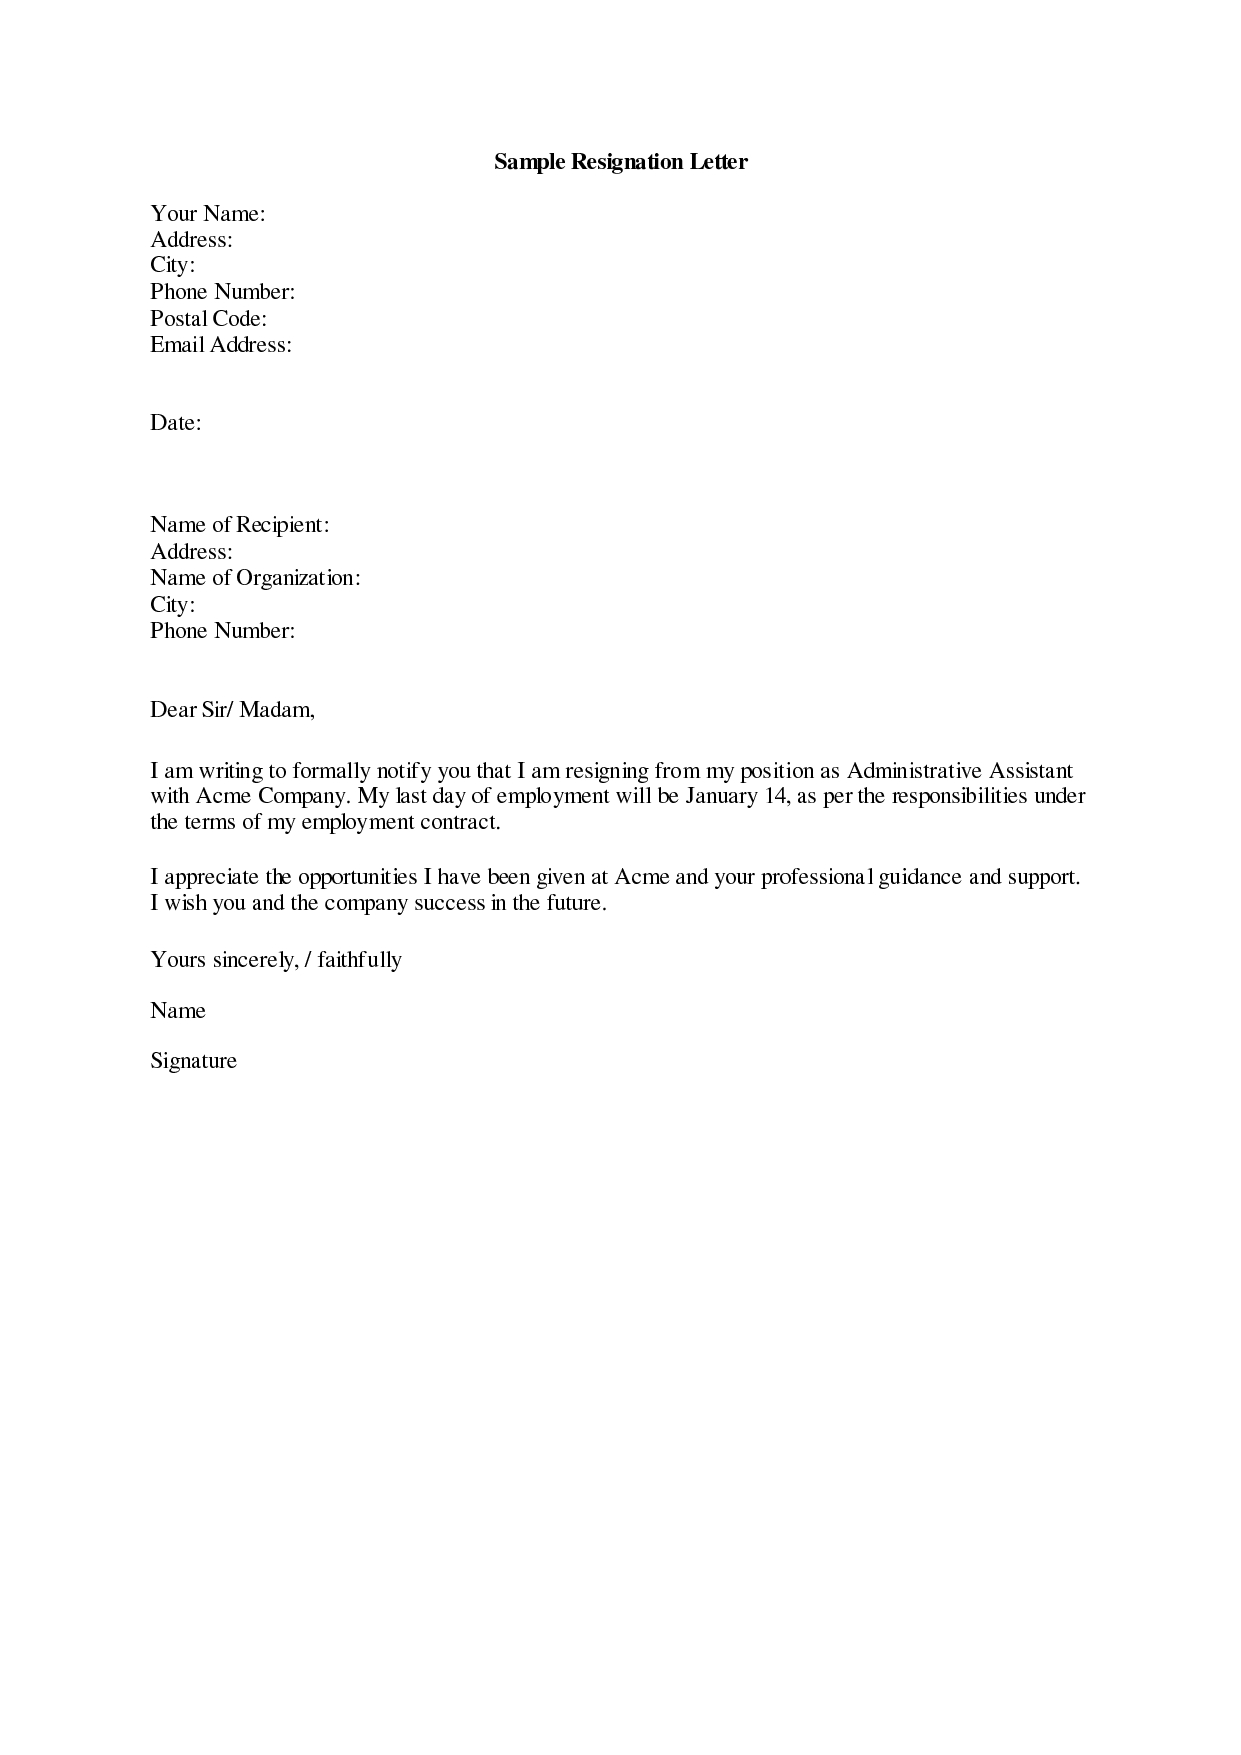 Retirement Letter to Employer Template - Resignation Letter Sample 19 Letter Of Resignation